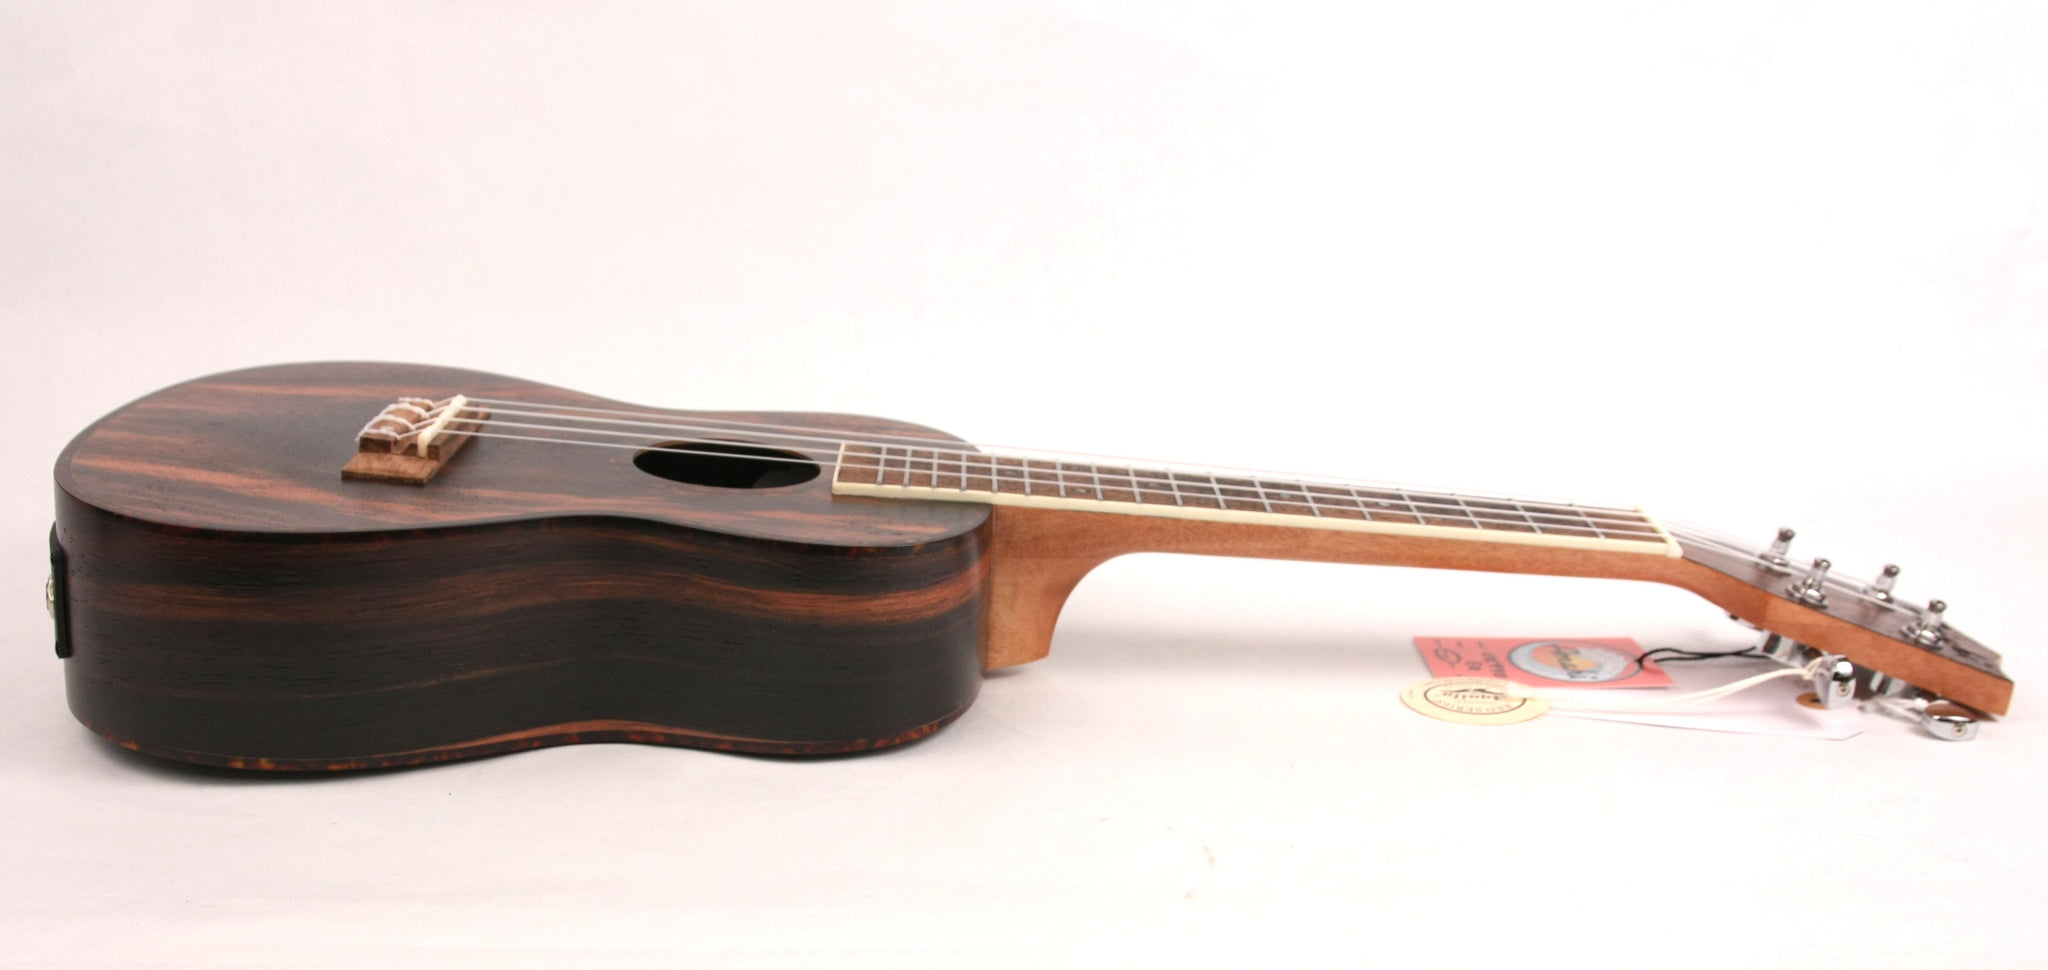 Amahi UK-990C-EQ Acoustic/Electric Concert Ukulele Uke Ebony NEW w/ Gig Bag FREE SHIPPING